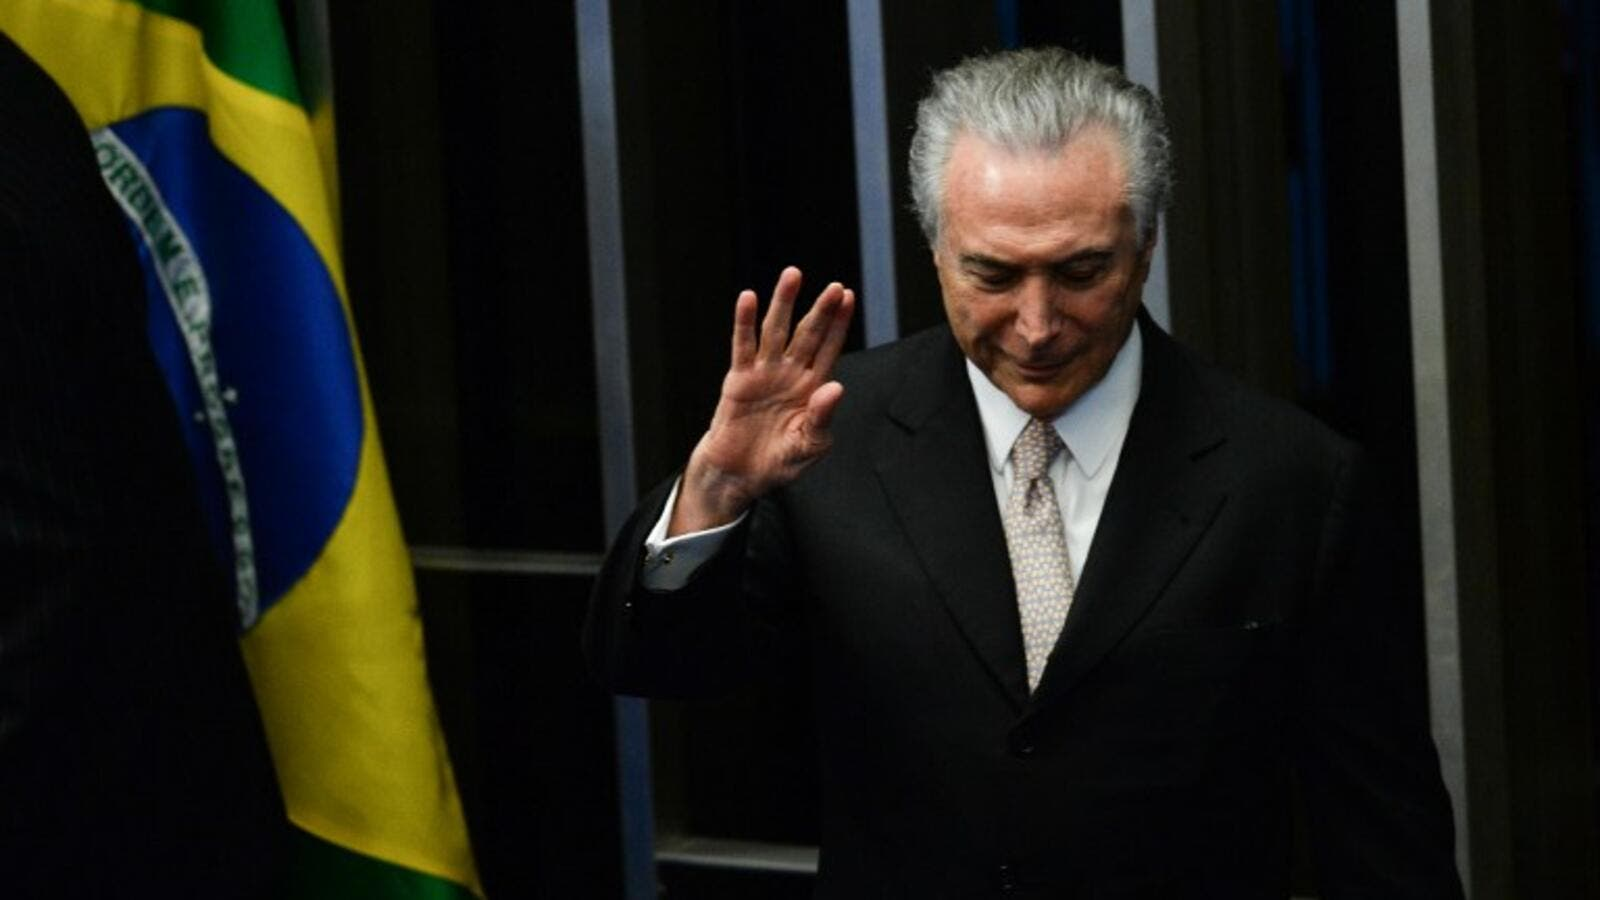 President Michel Temer waves as he takes office before the plenary of the Brazilian Senate in Brasilia, on August 31, 2016. (AFP/Andressa Anholete)